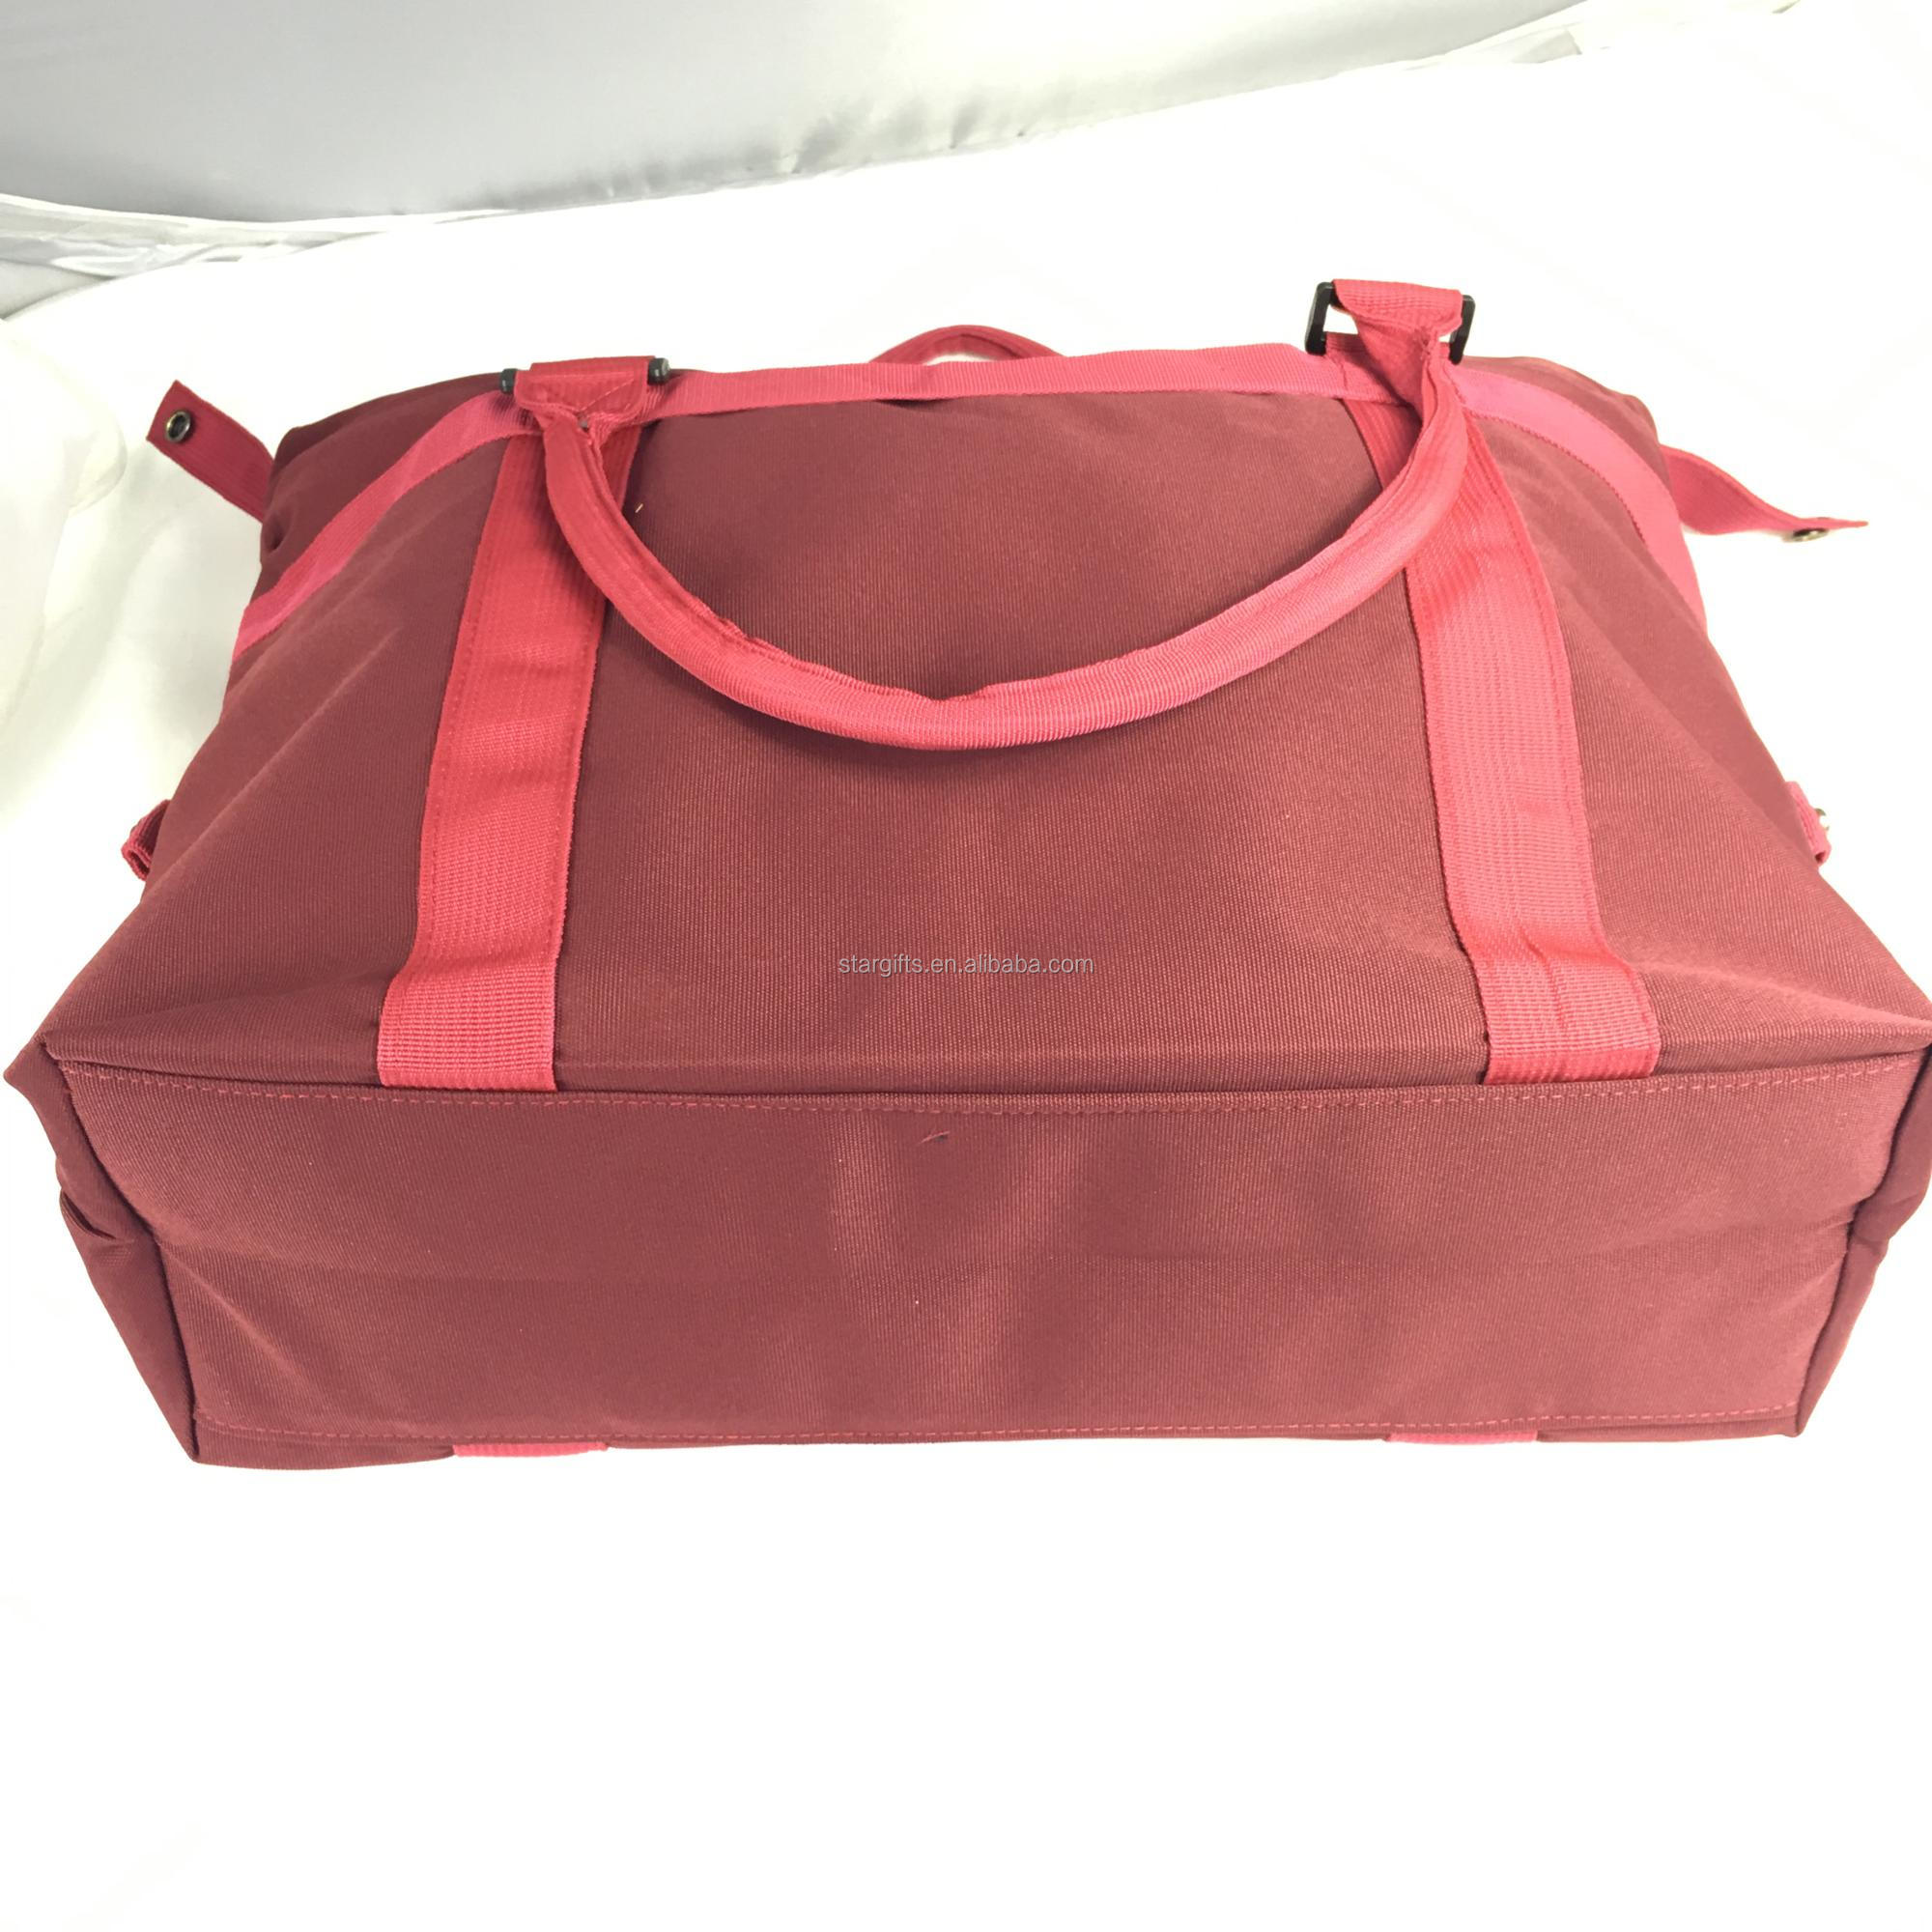 46da12e1c Wholesale Lightweight Waterproof Foldable Nylon Large Capacity Travel Tote  Bag With Built-in Pouch